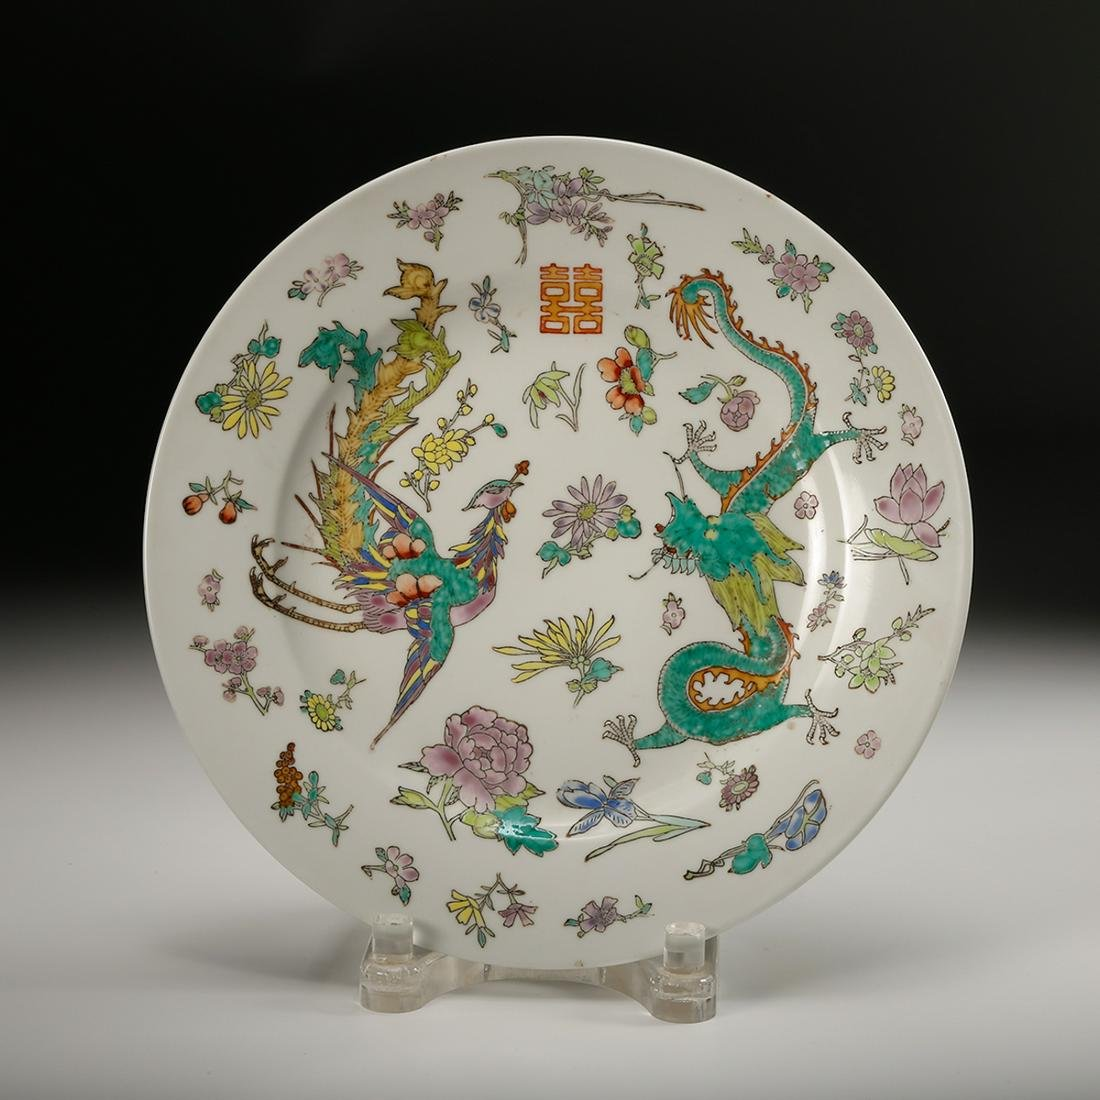 CHINESE FAMILLE ROSE PORCELAIN PLATE, QING DYNASTY